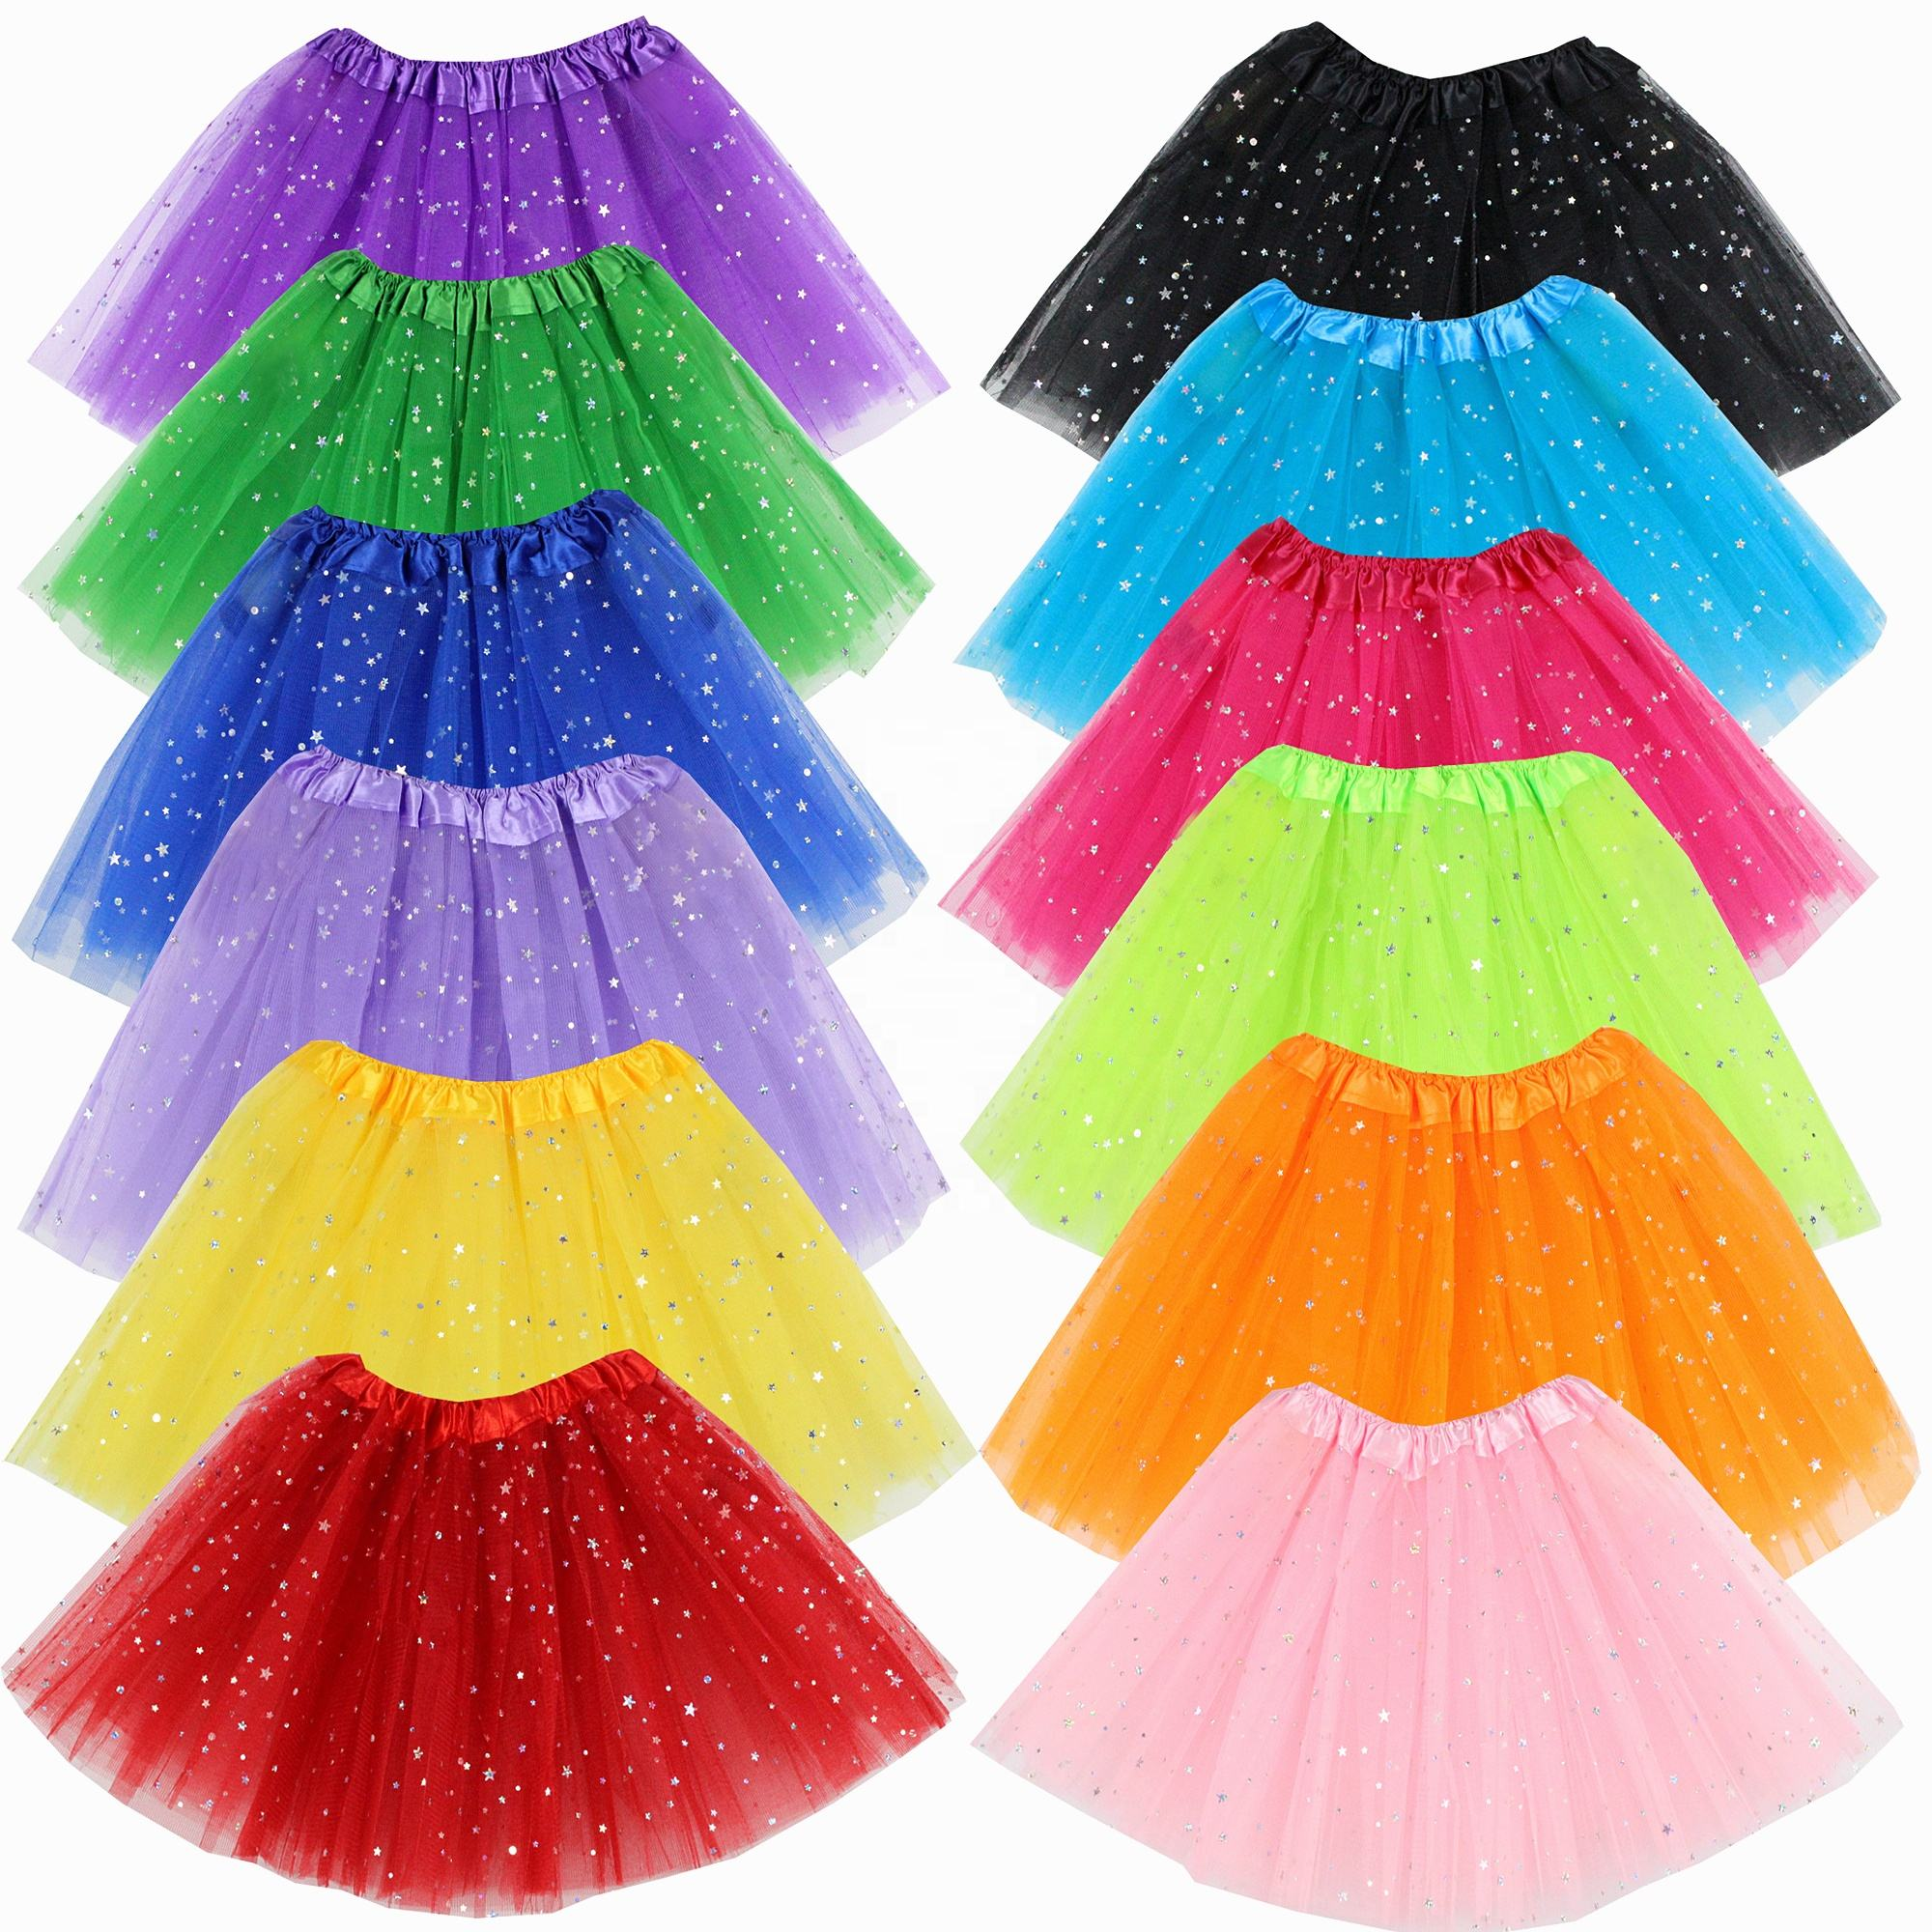 Children and Girl's 3 Layers Star Sequin Ballet Skirt Princess Sparkling Dress-up Tutu